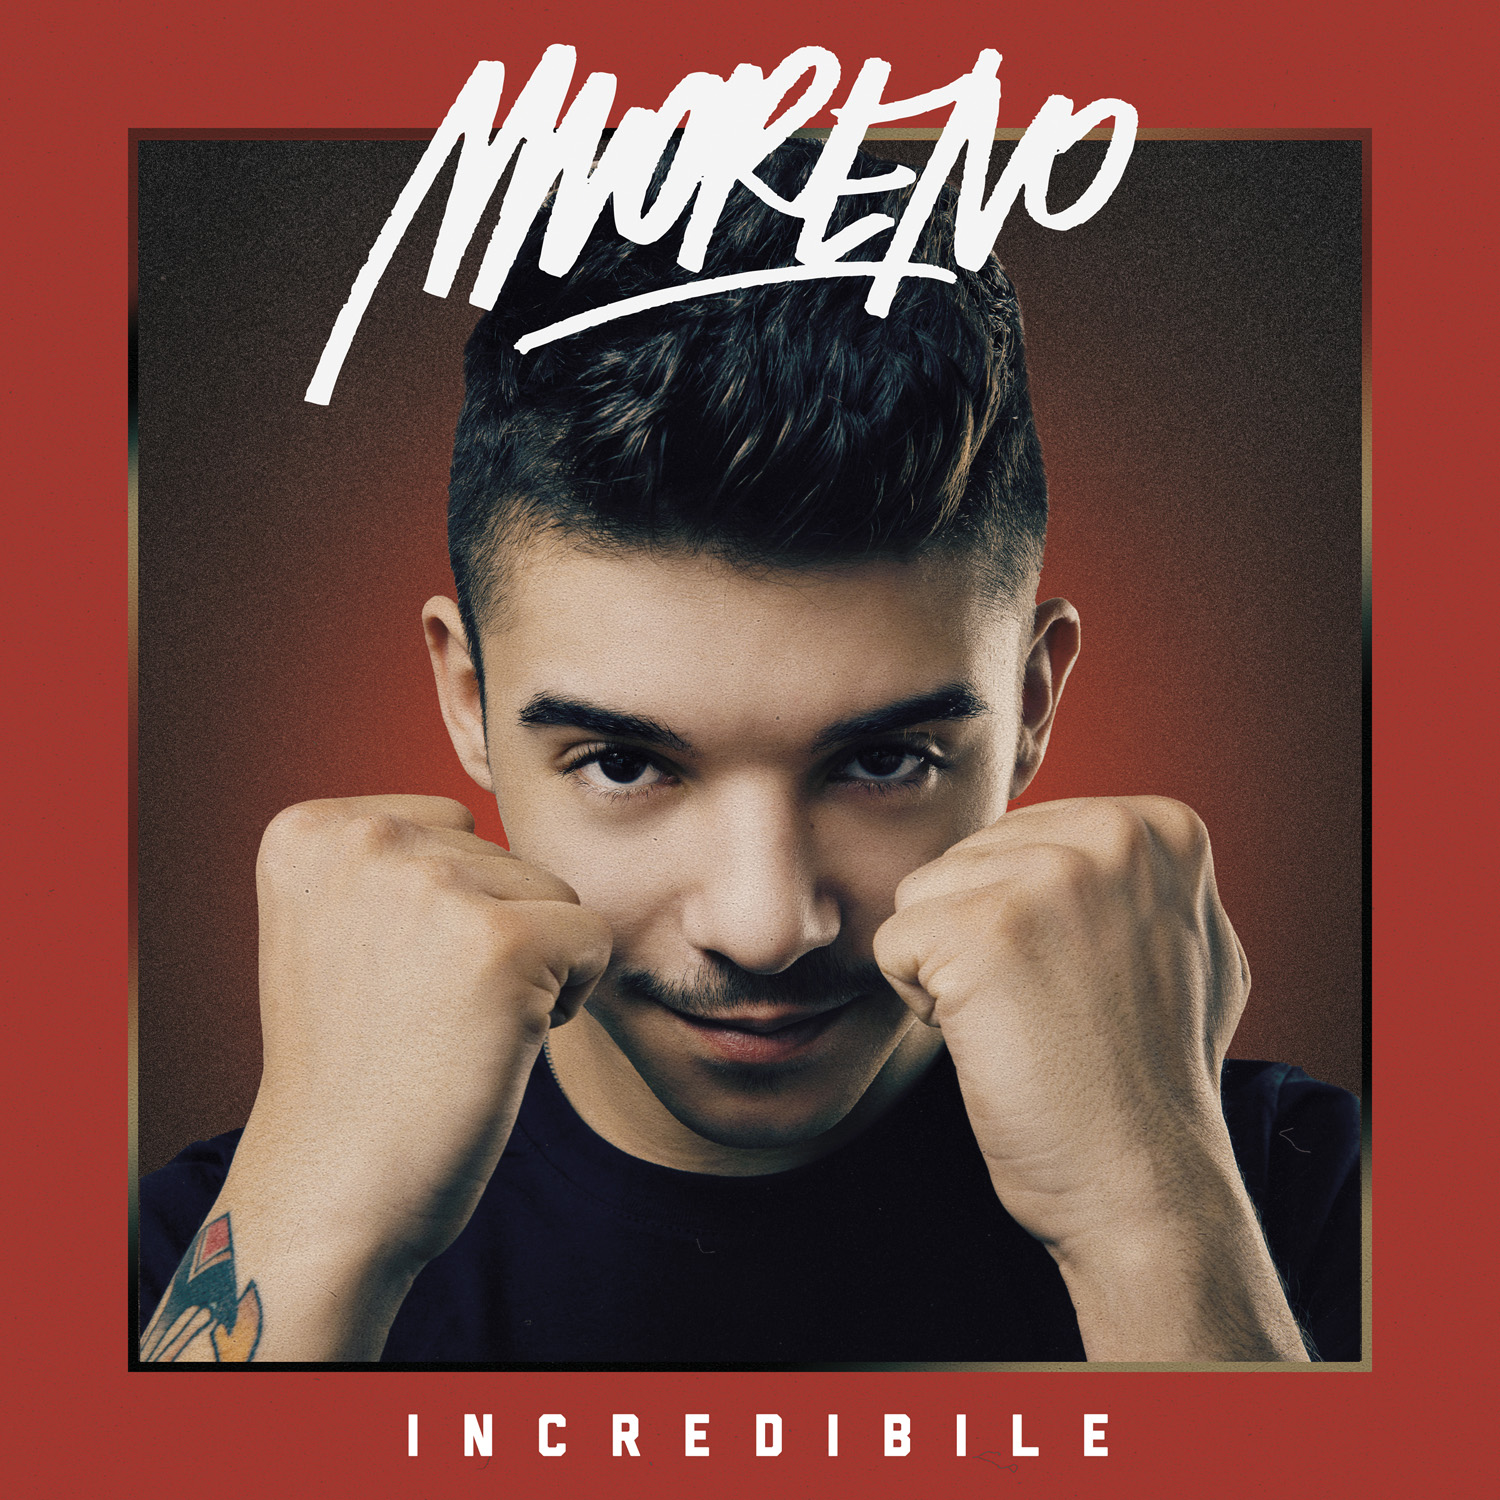 moreno-incredibile-nuovo album-cover